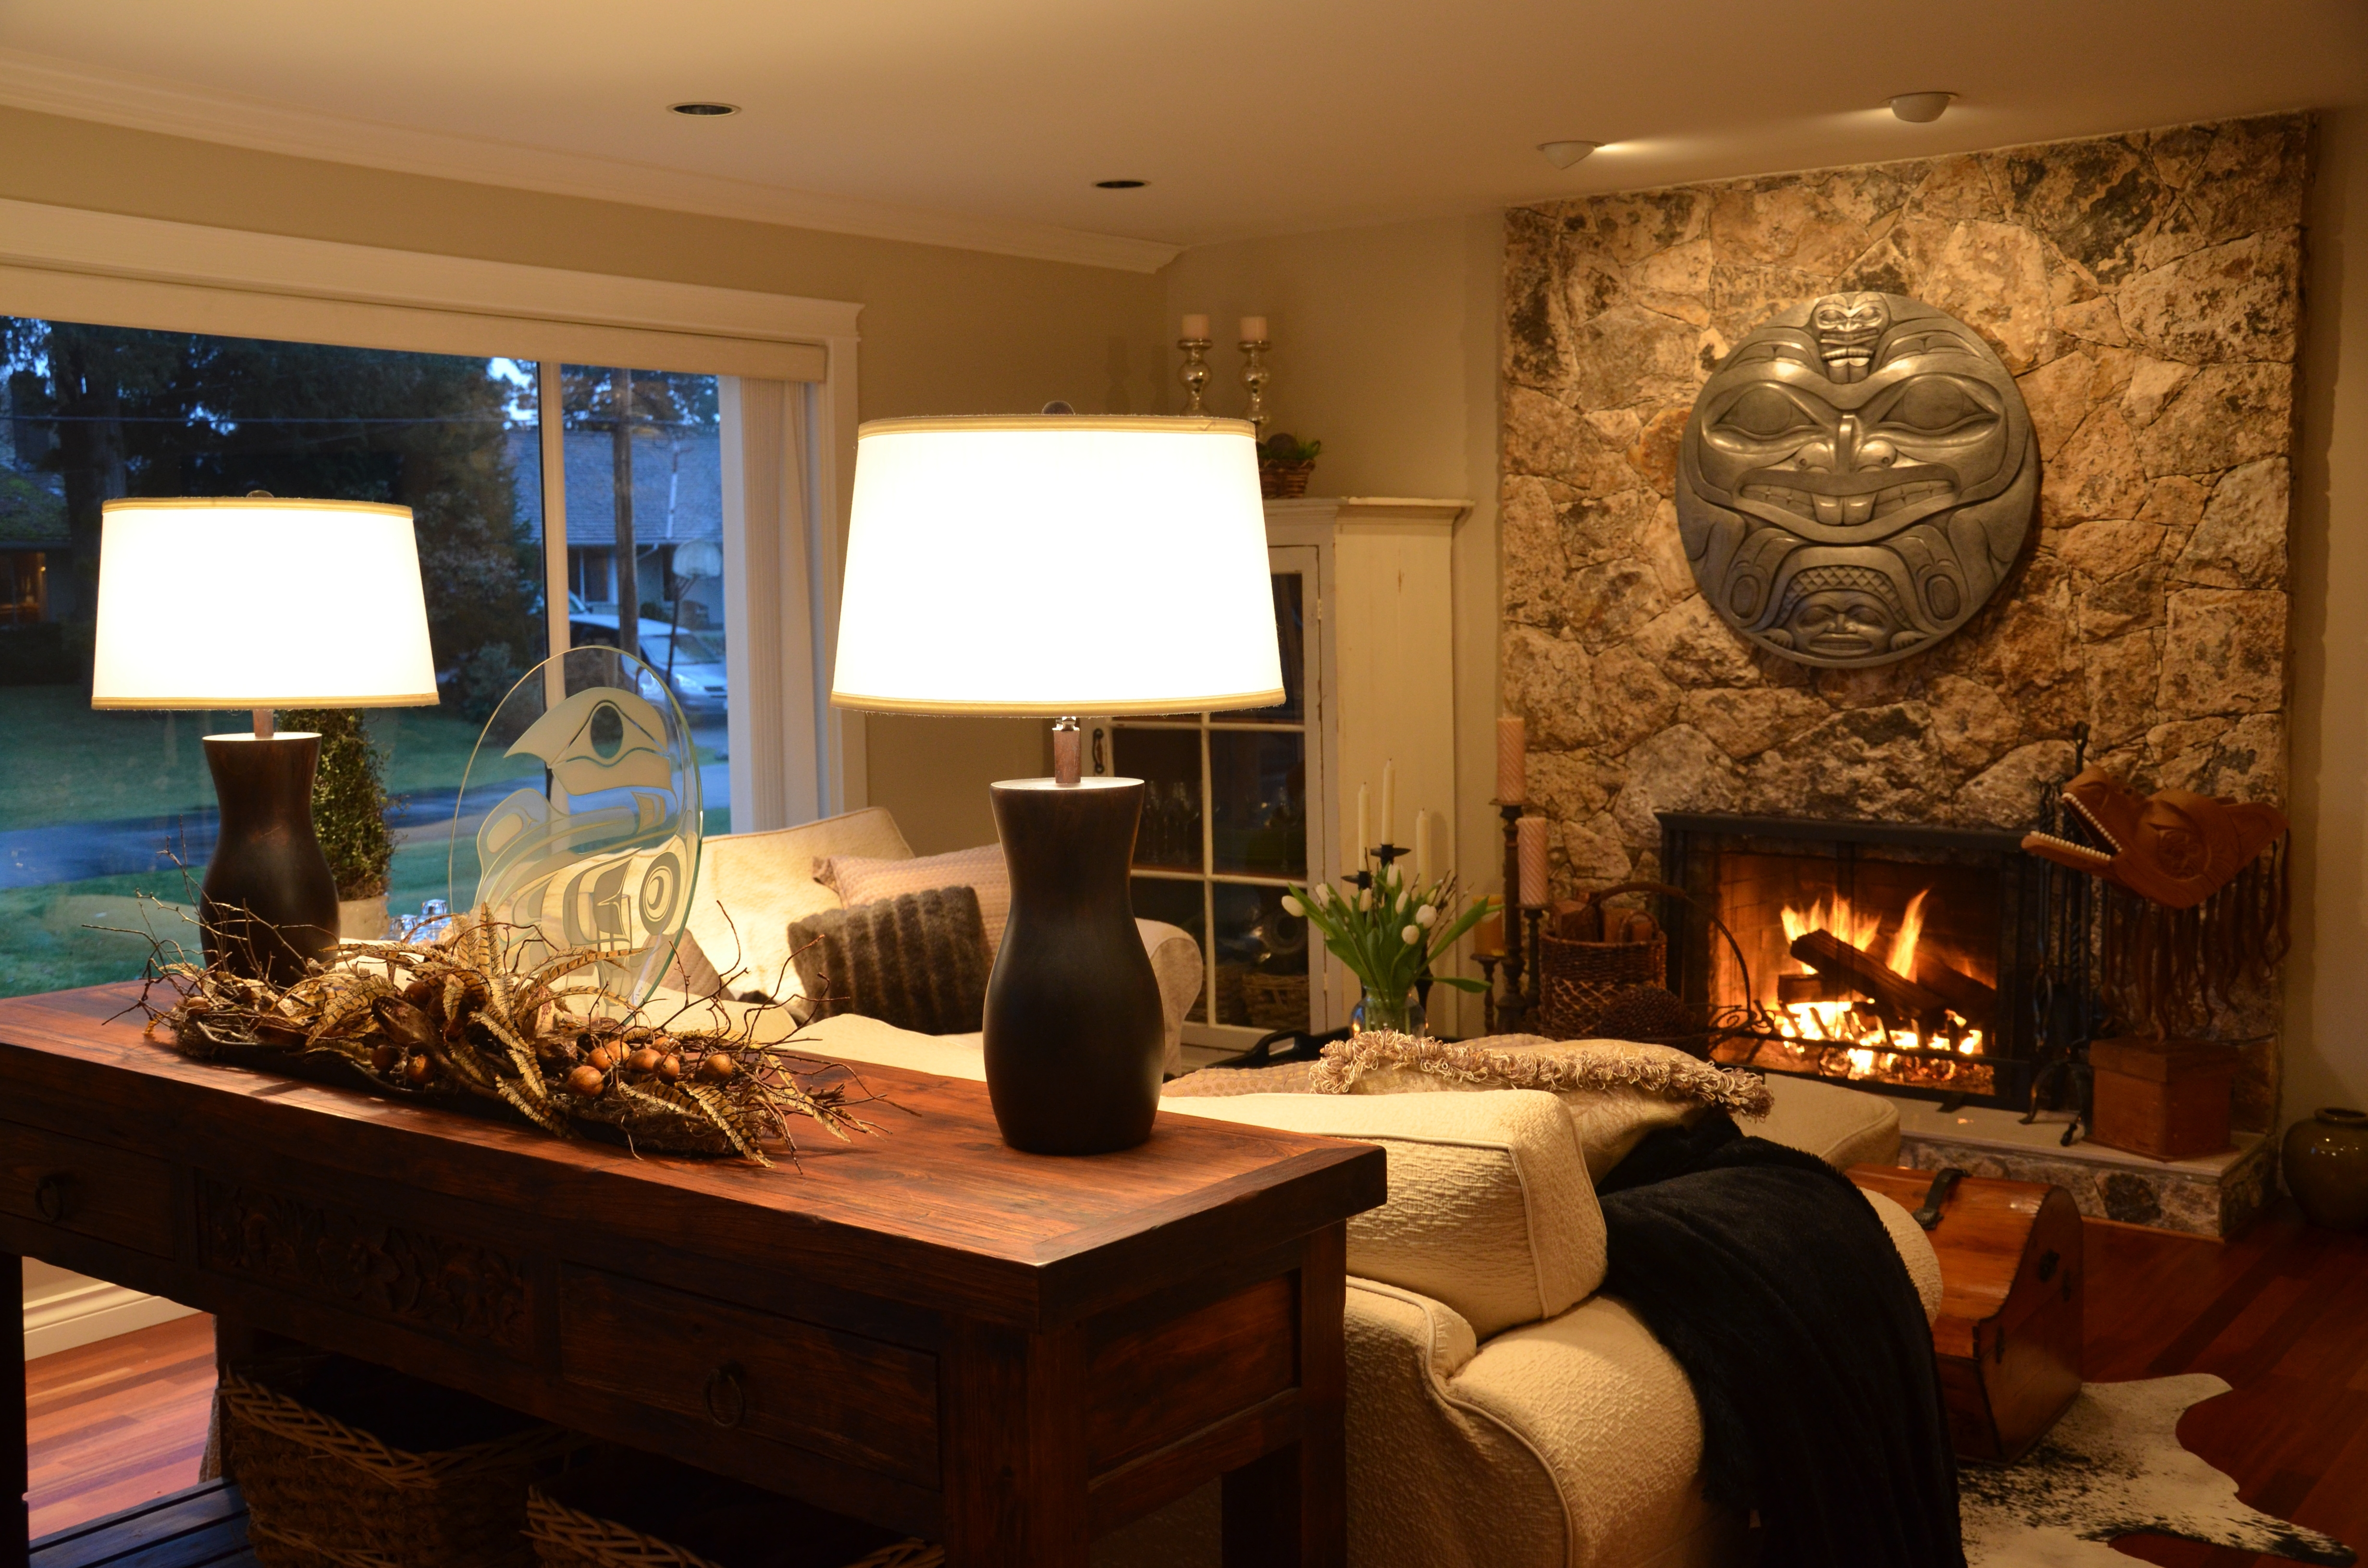 Large Living Room Table Lamps Modern House, Elegant Living Room Regarding Latest Large Living Room Table Lamps (View 9 of 20)